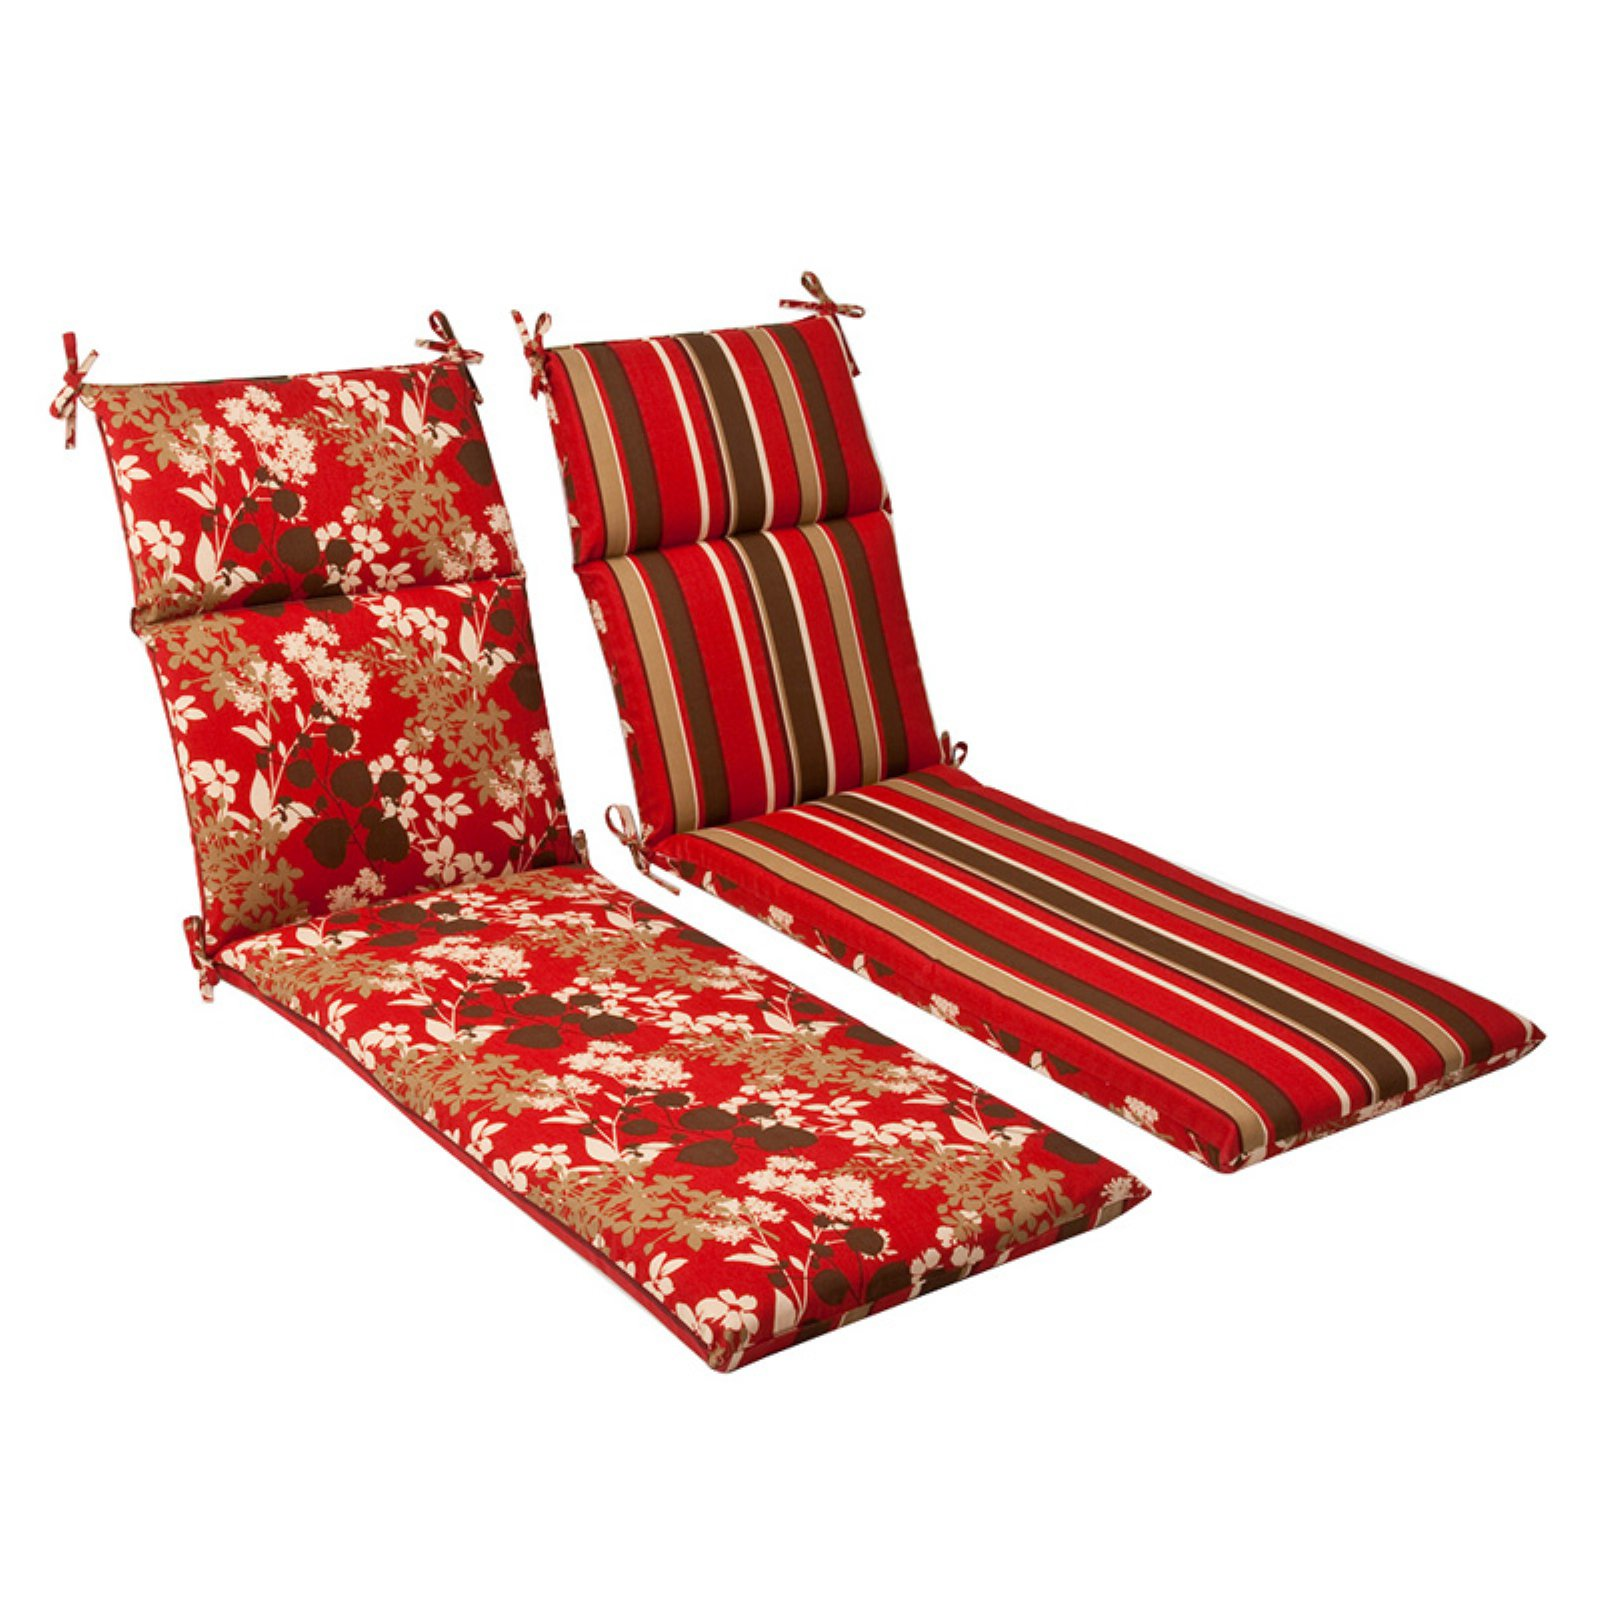 Pillow Perfect Reversible Outdoor Chaise Lounge Cushion - 72.5 x 21 x 3 in.